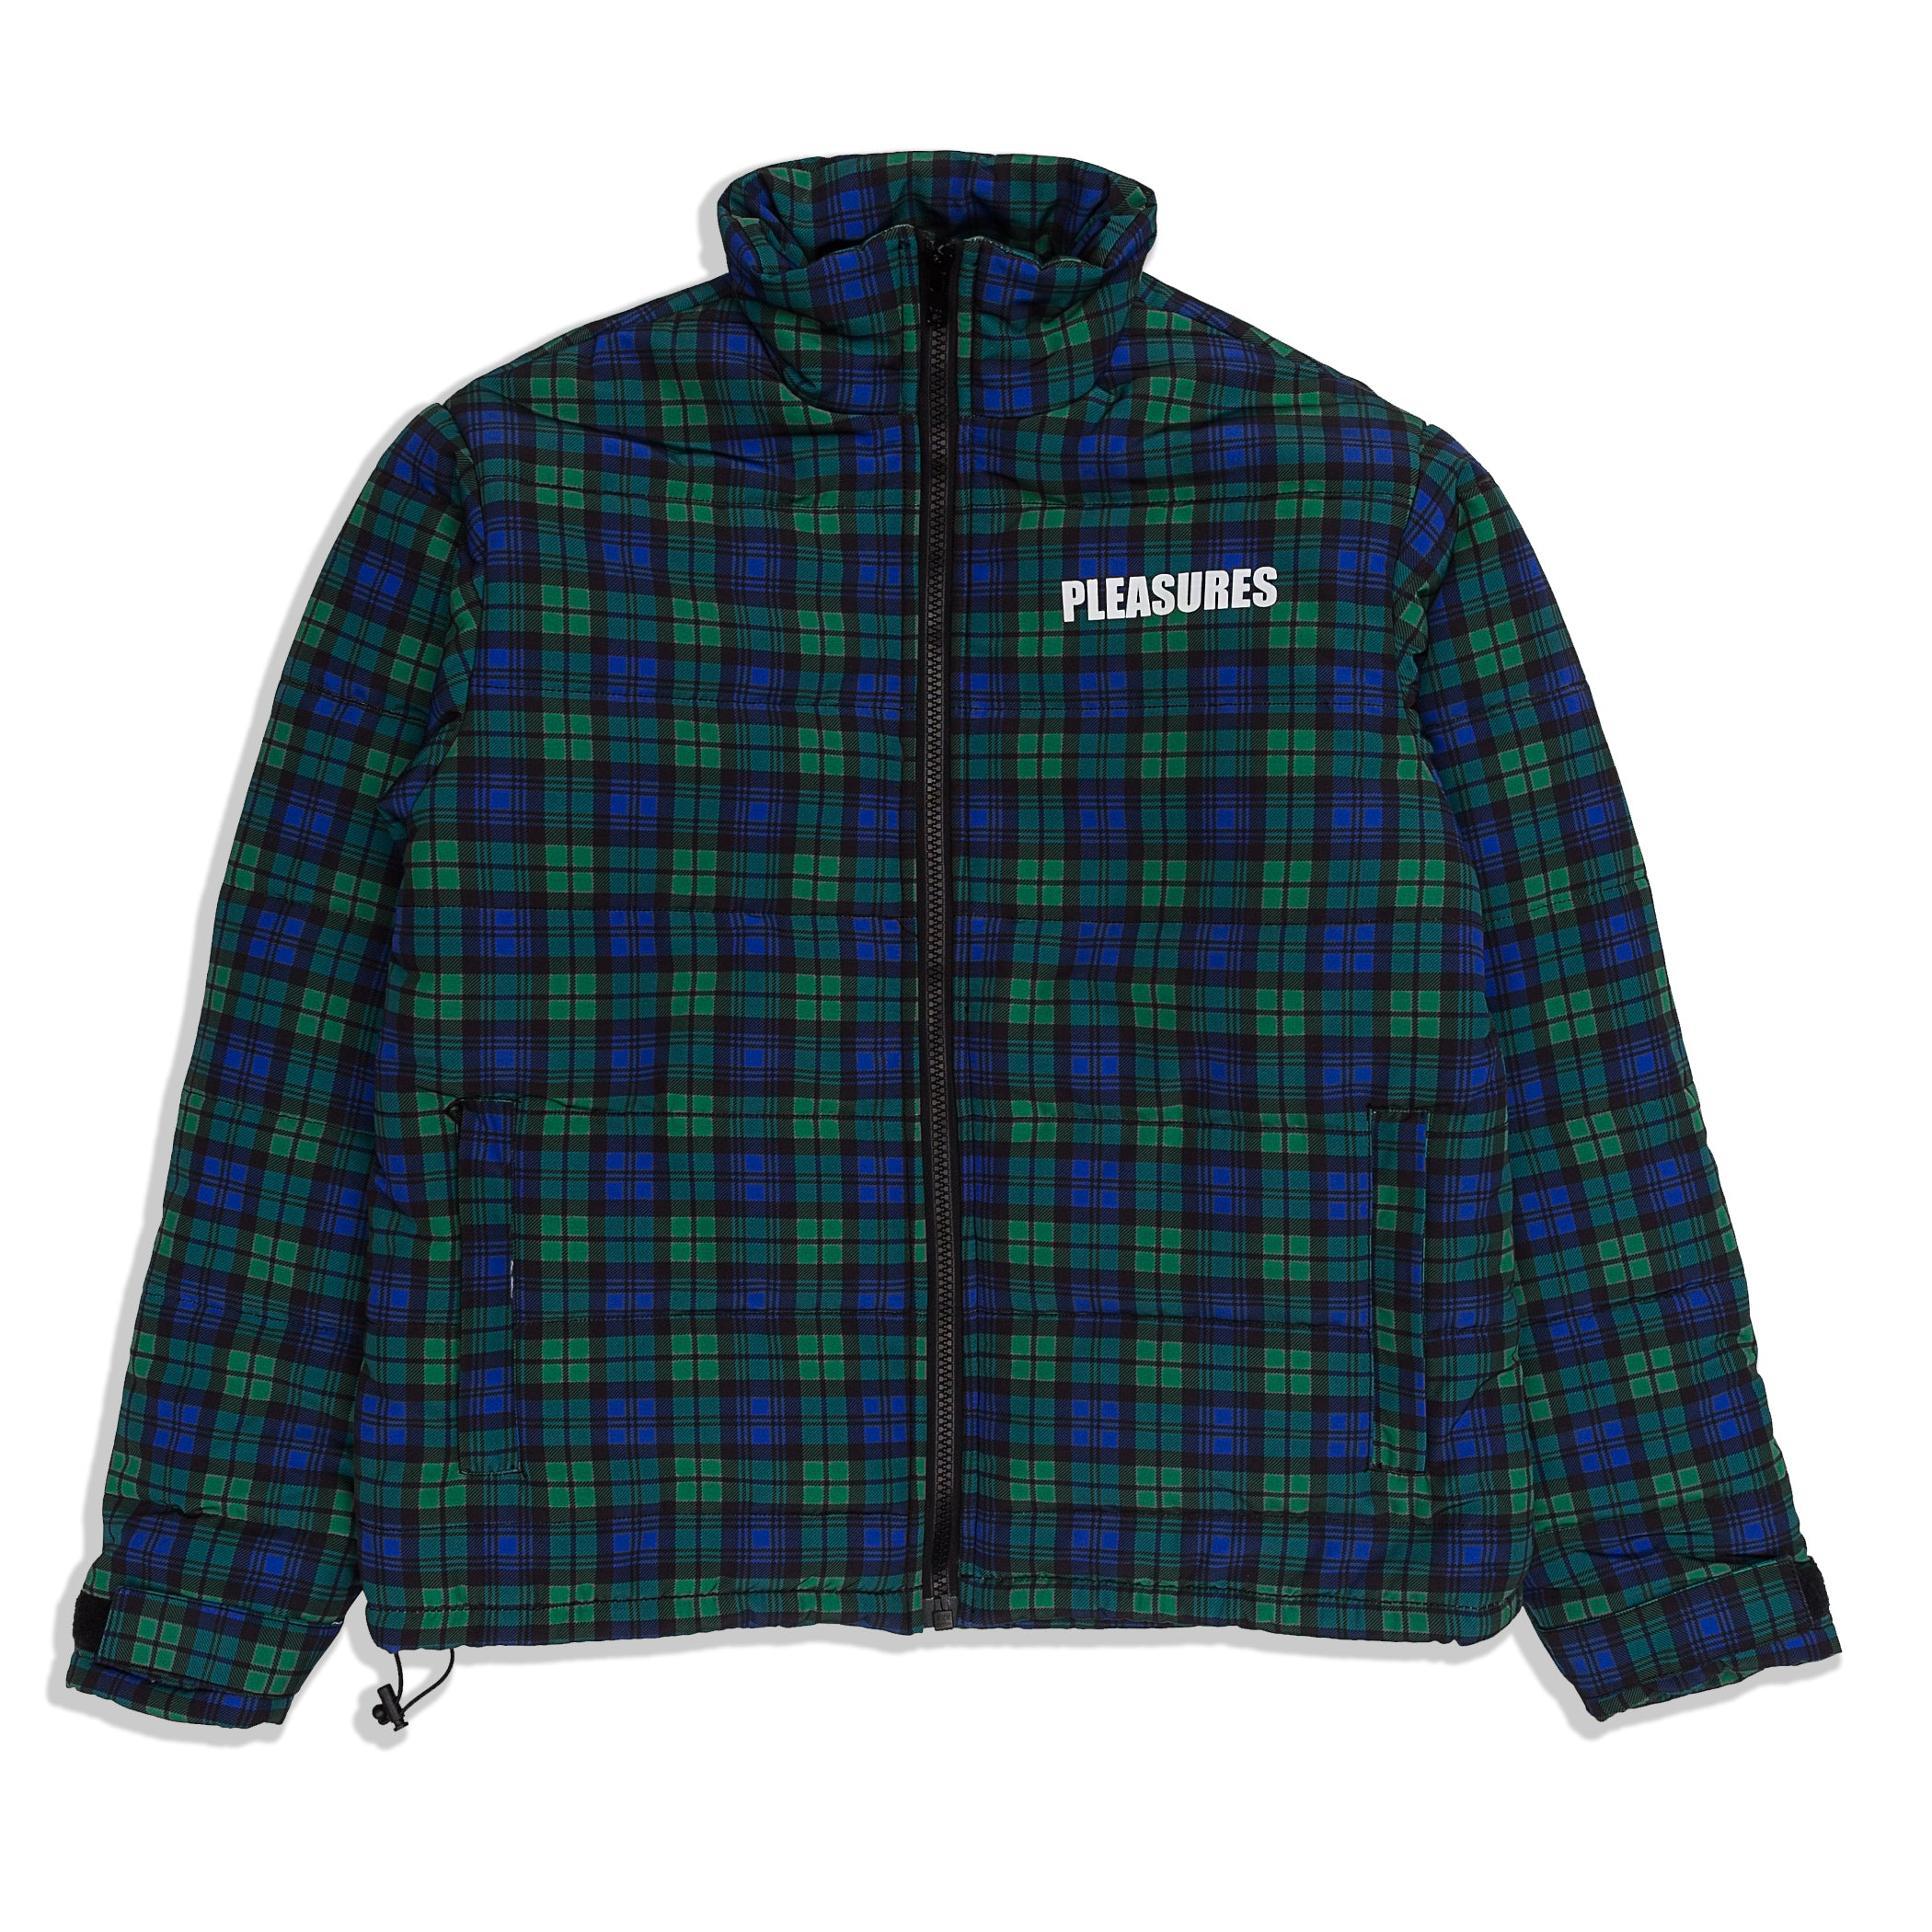 Pleasures - Decades Plaid Puffer Jacket